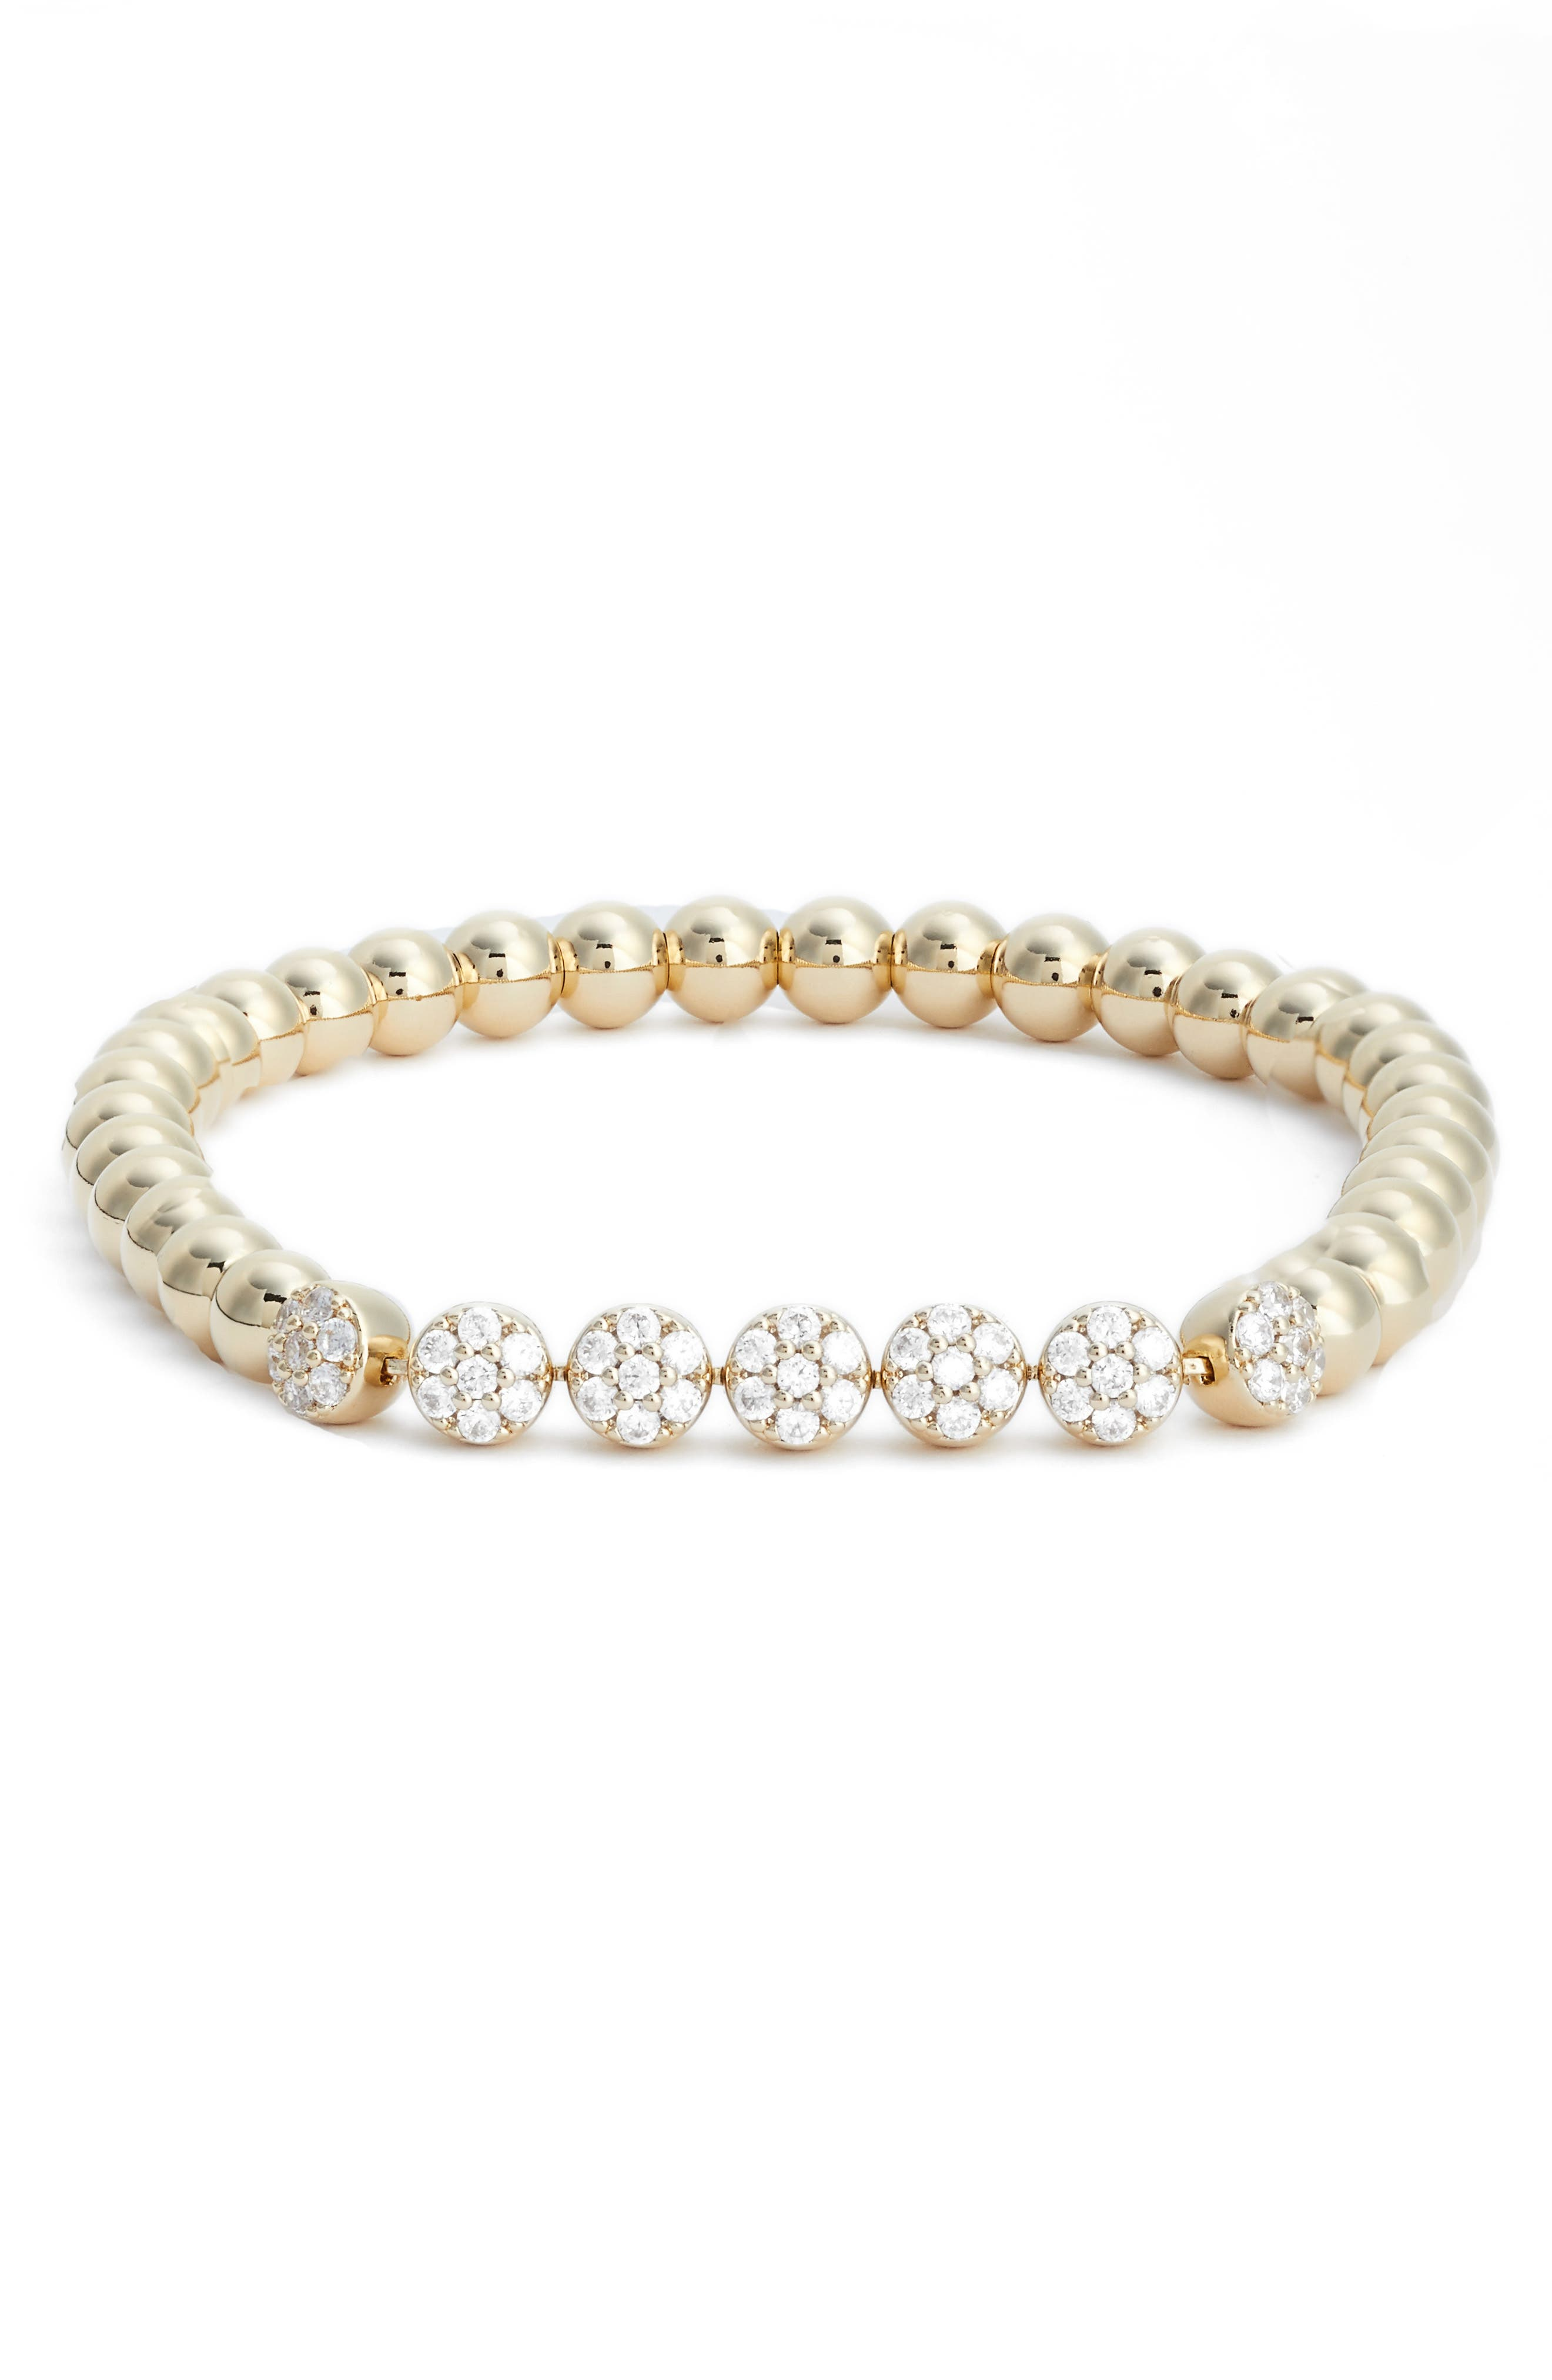 Cubic Zirconia Bracelet,                             Main thumbnail 3, color,